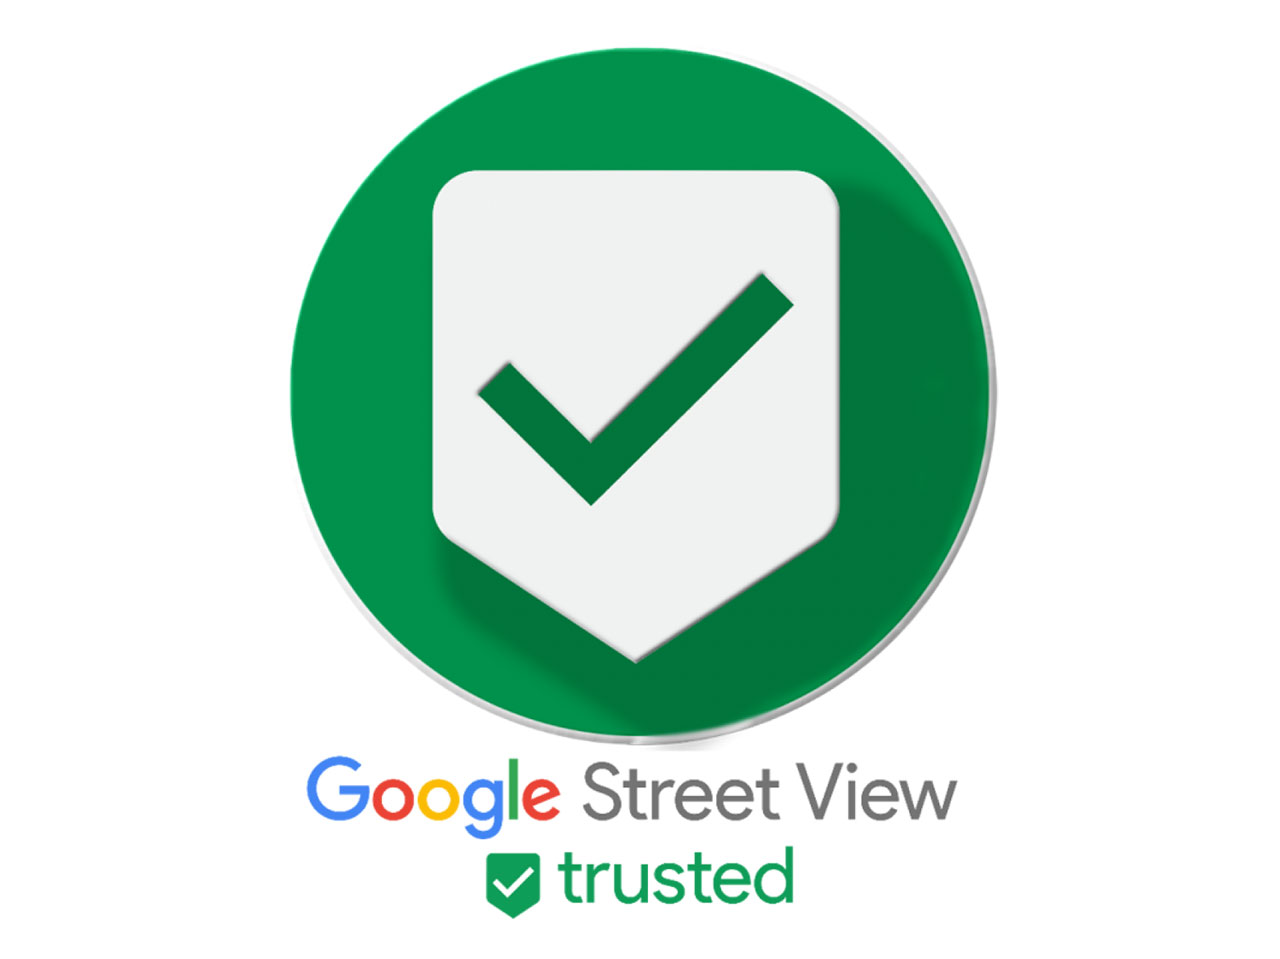 google-trusted-logo